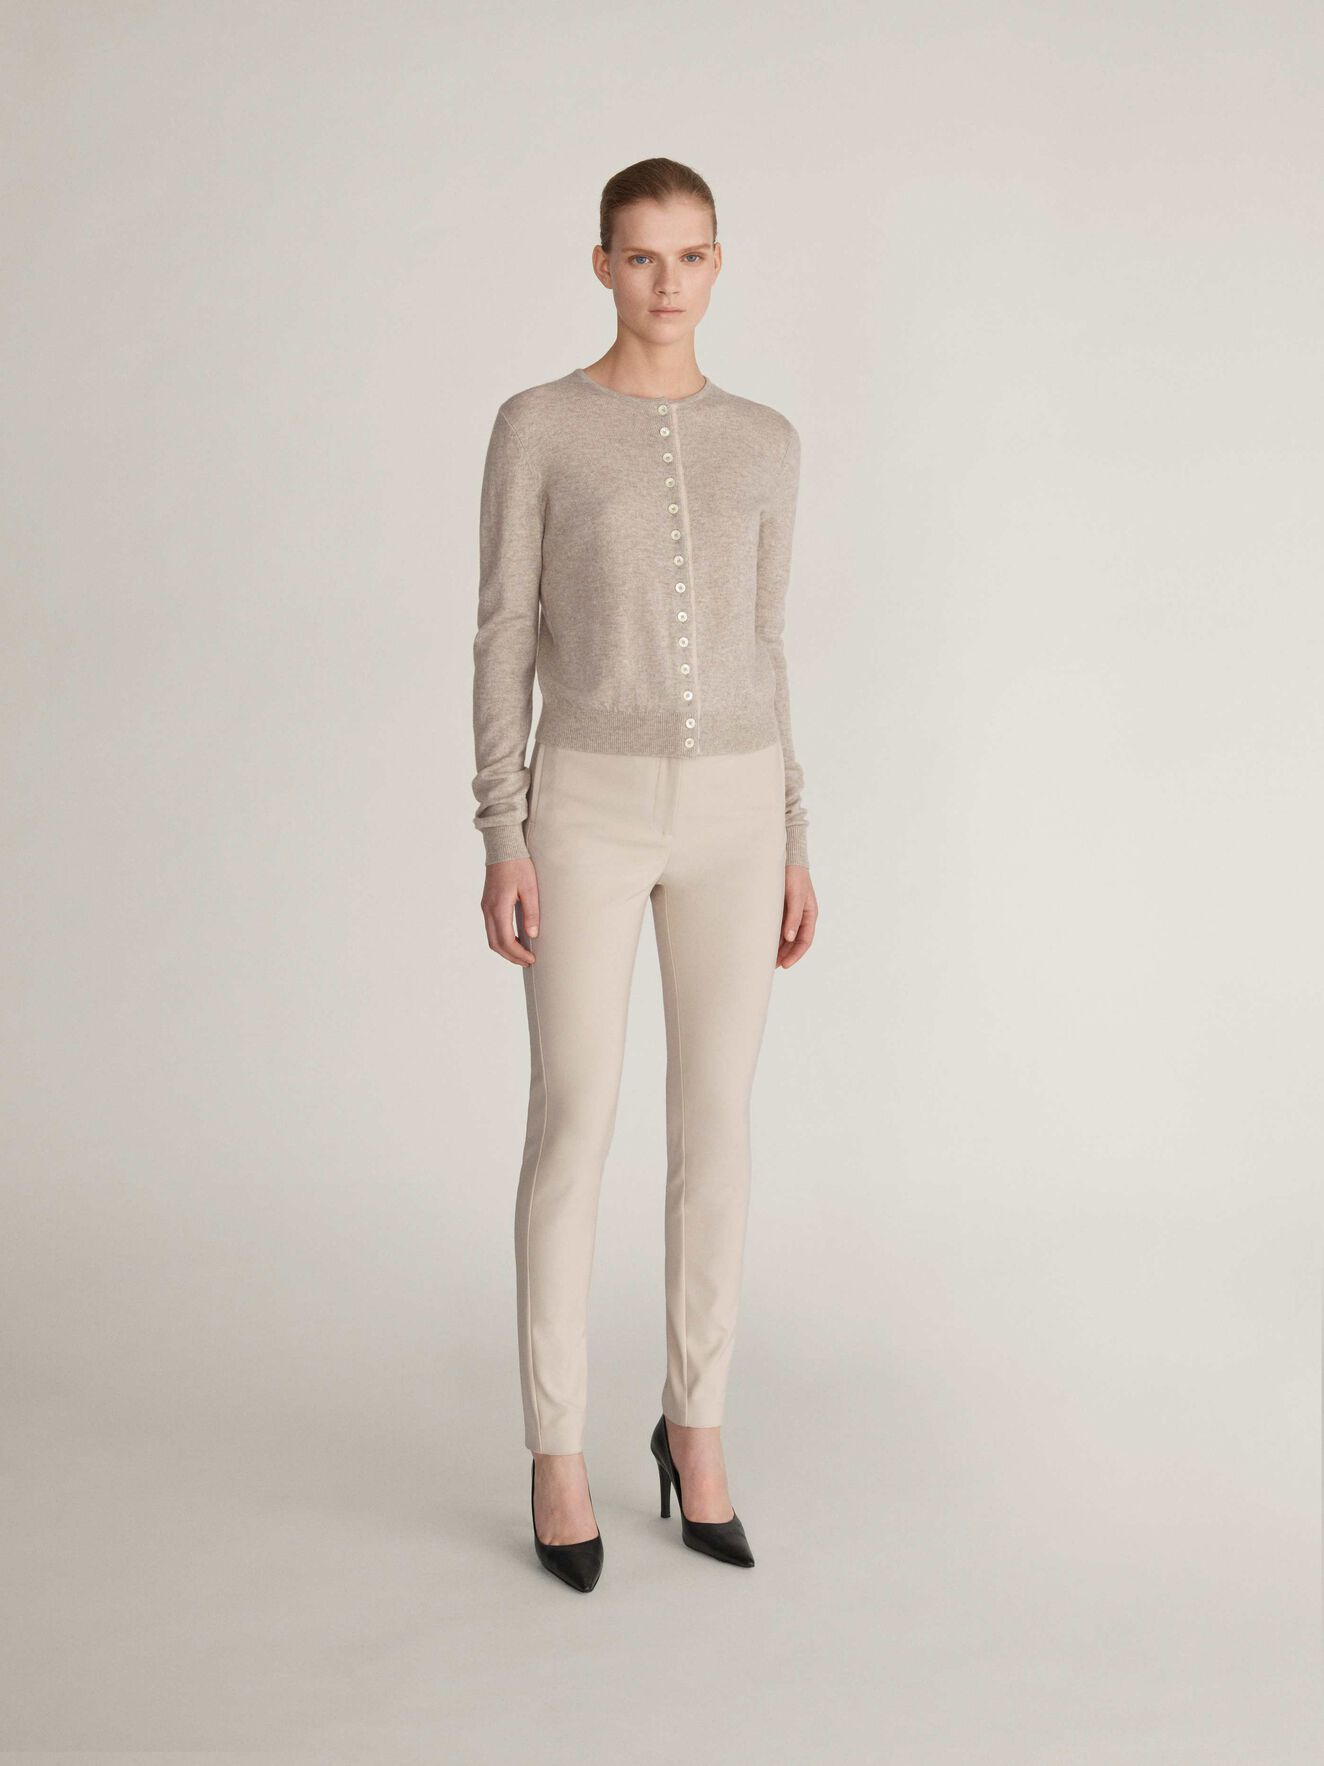 Cristin S Trousers in Roasted Oat from Tiger of Sweden